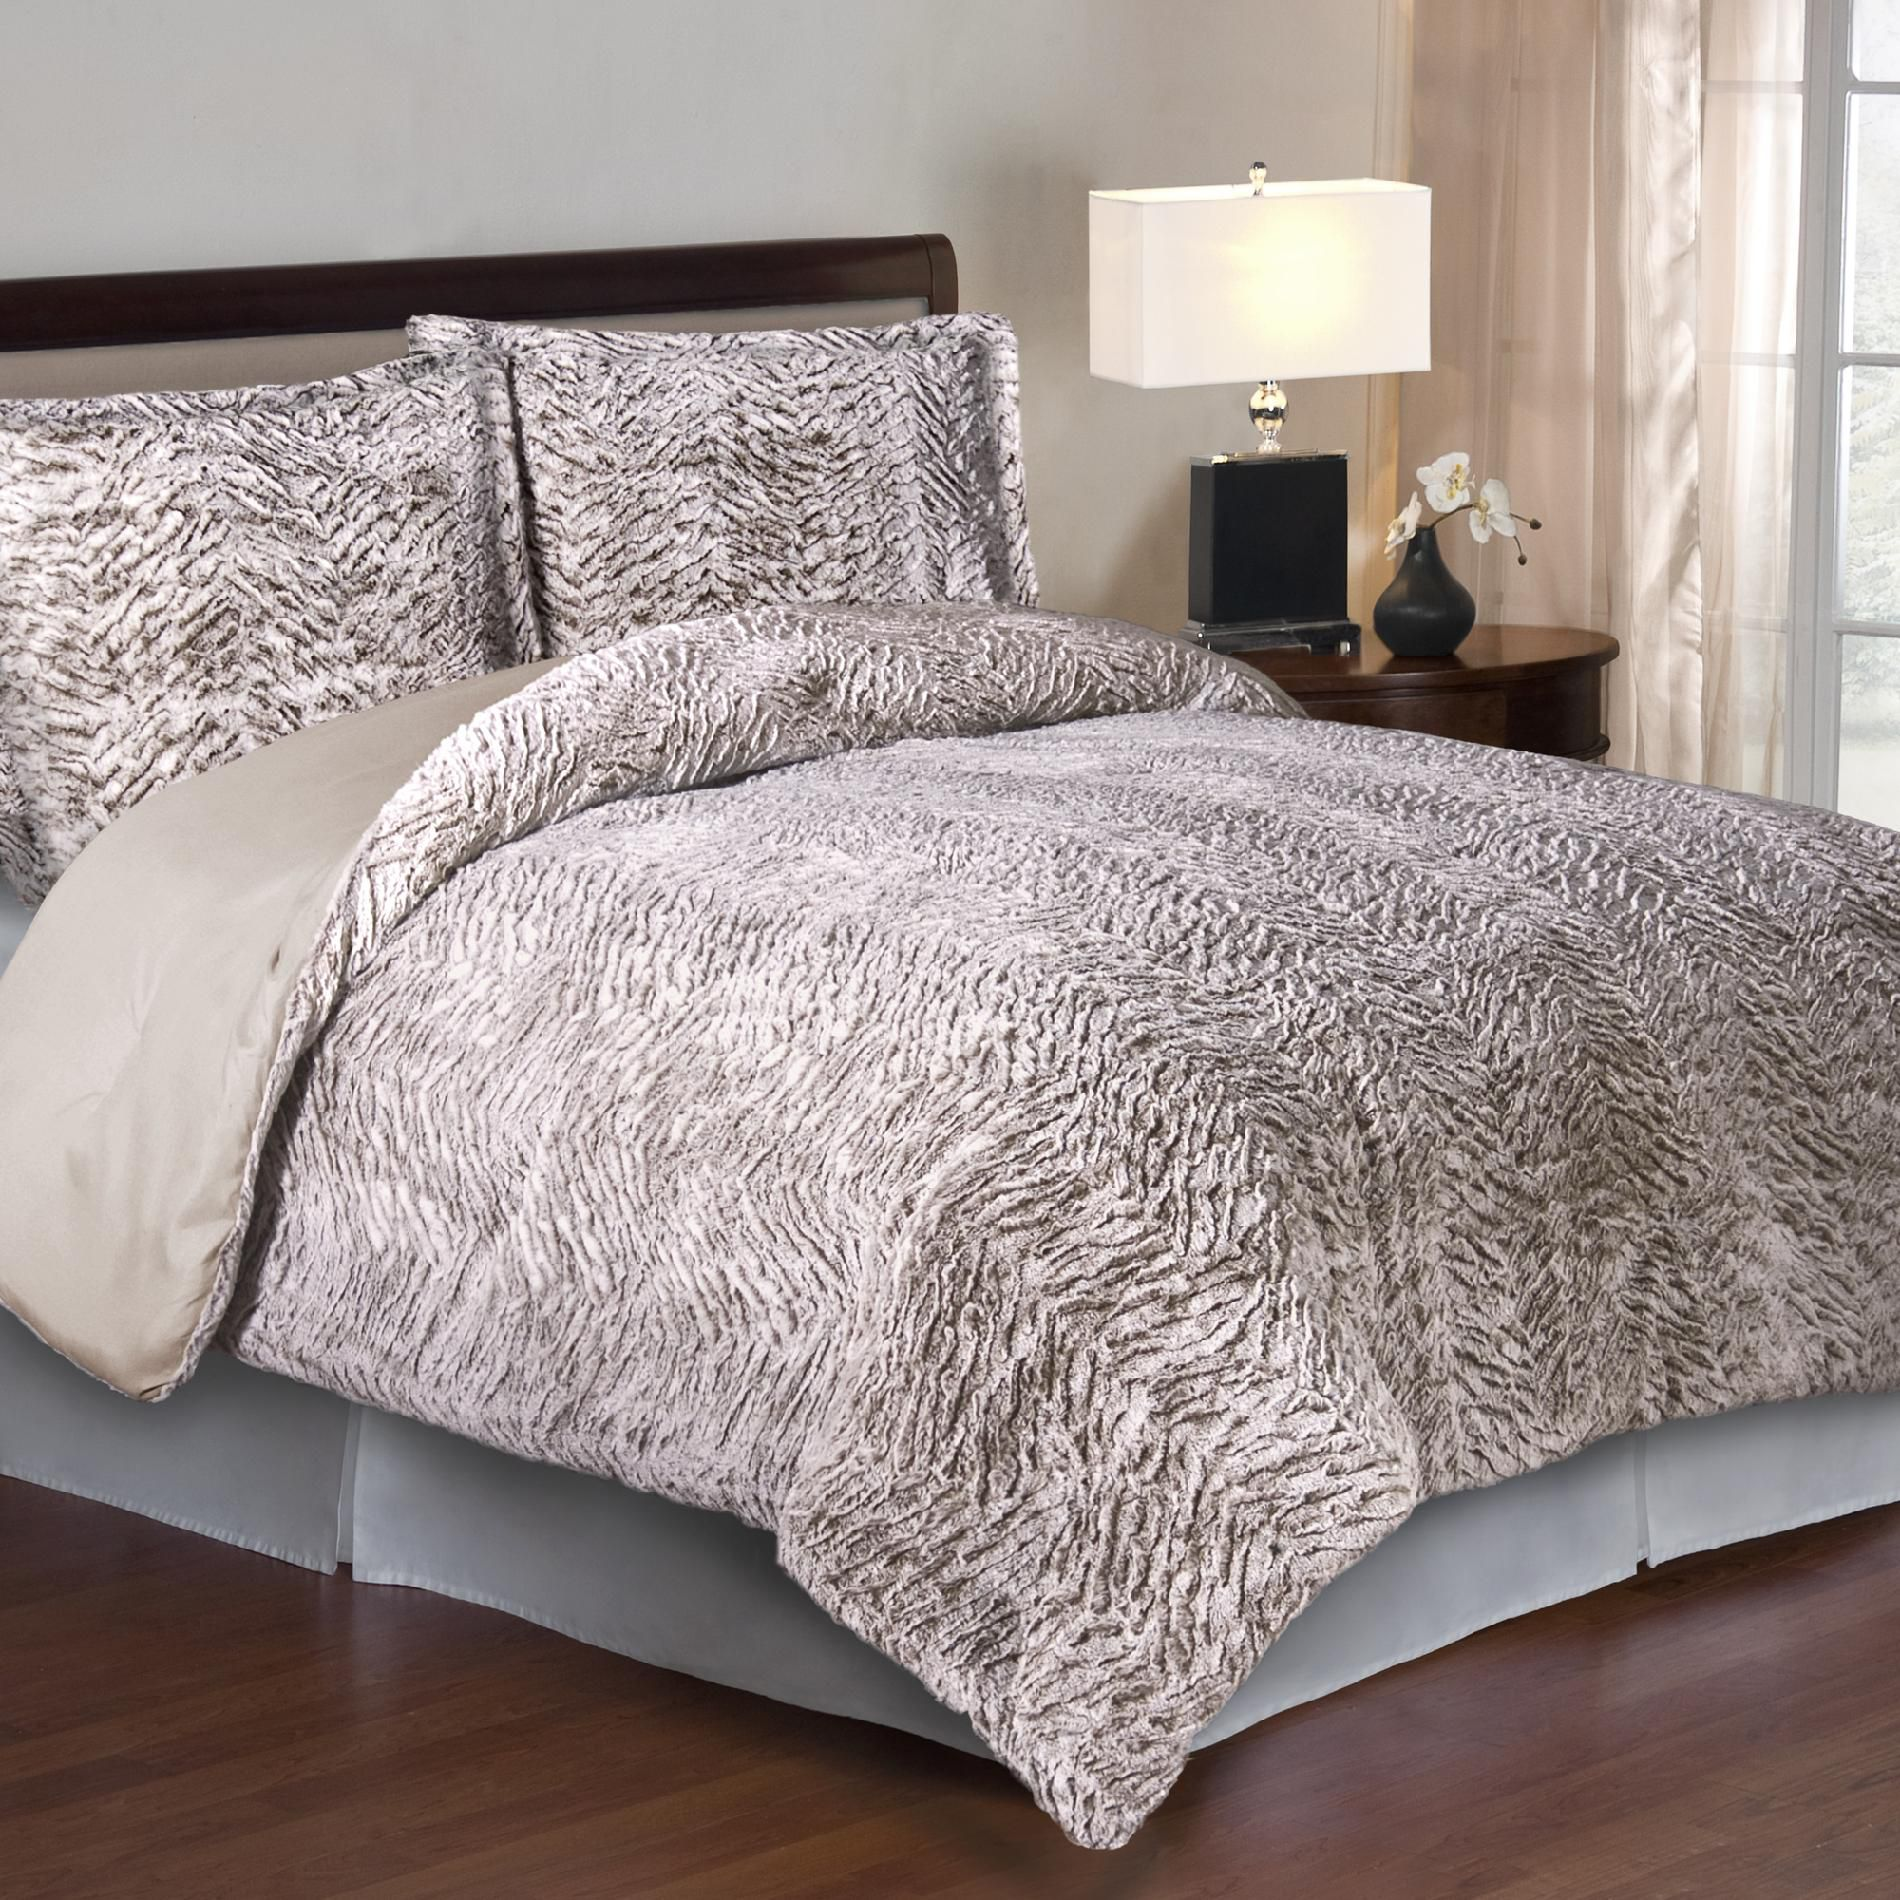 Cozy Nights 3pc Comforter Set - Neutral Carved Mink Faux Fur